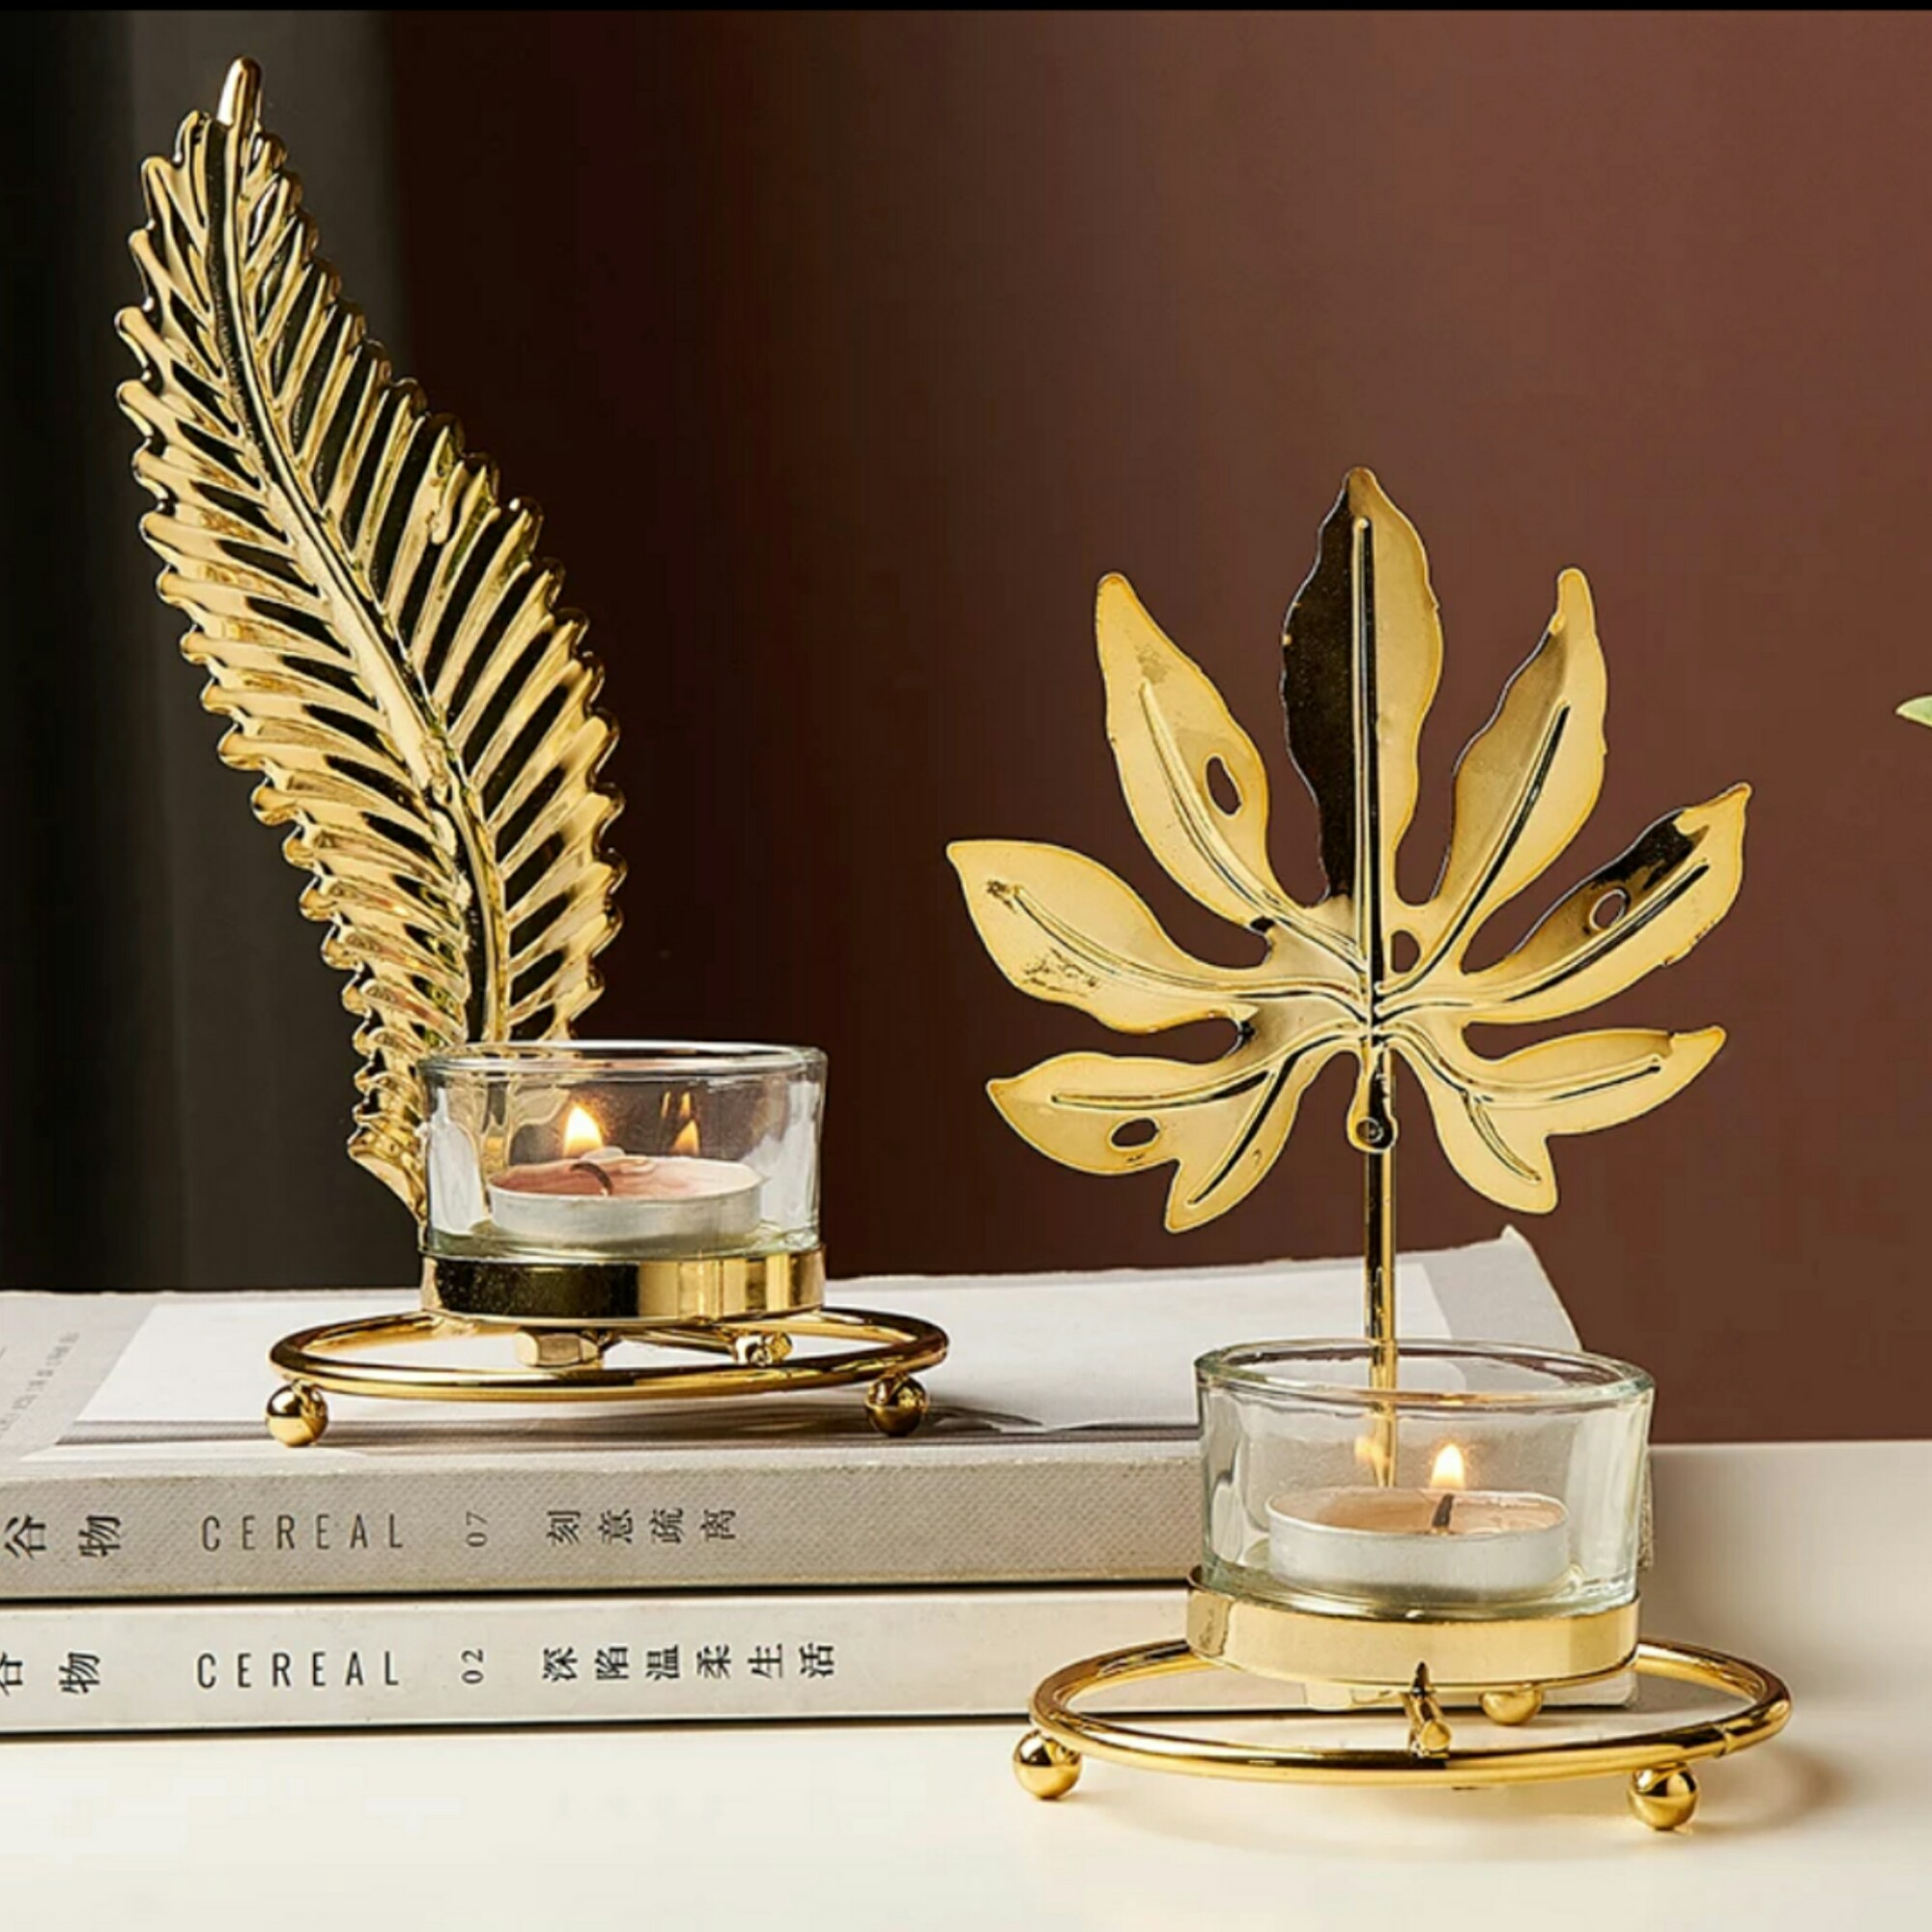 1 piece European style modern home decoration accessories Yellow gold leaf shaped candle holder Restaurant hotel living room bedroom